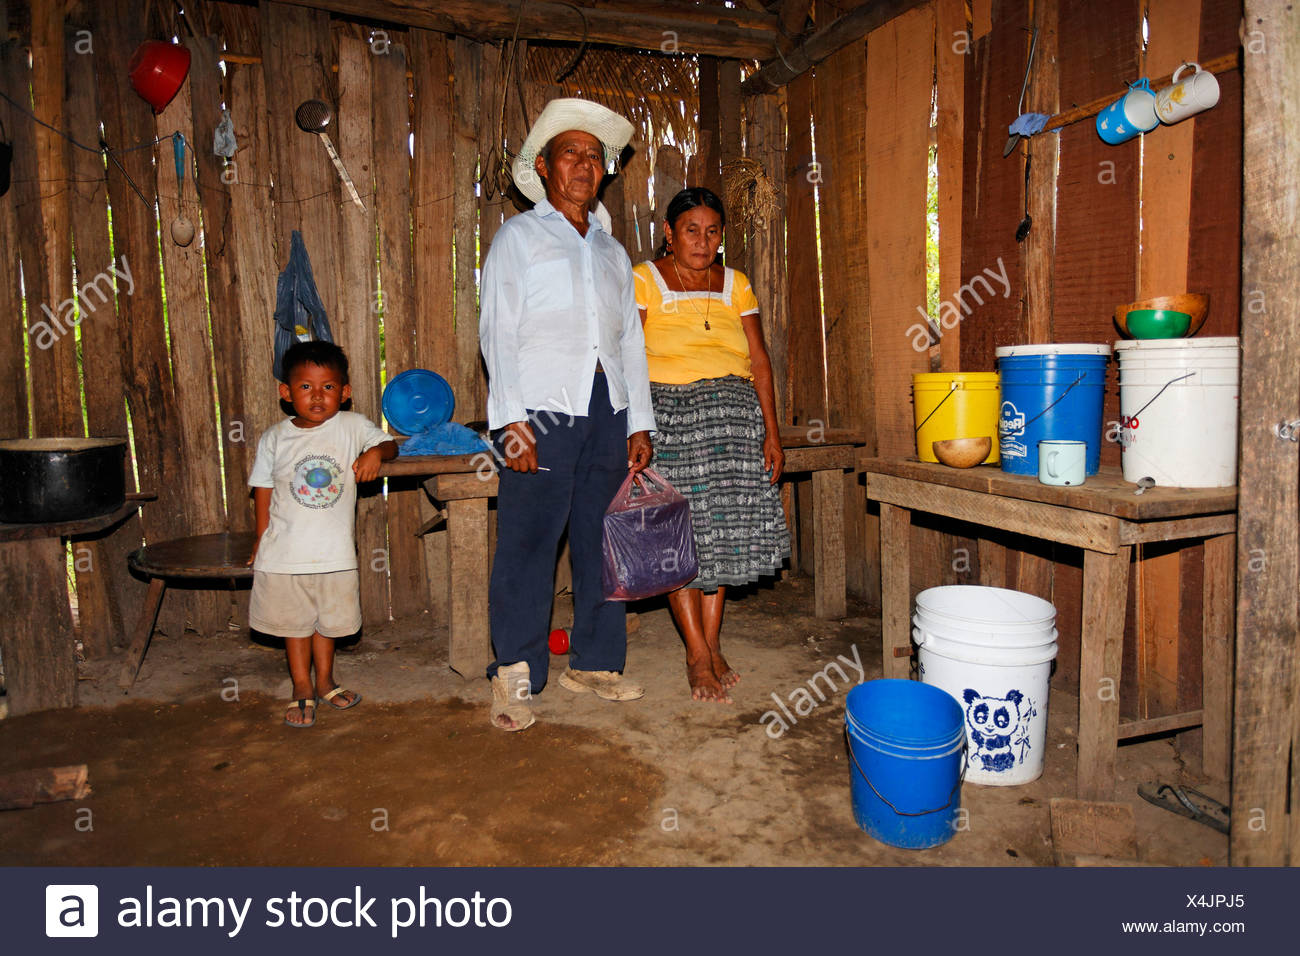 Mayan woman, man, small boy, one-room flat, plastic bucket, wooden hovel, Punta Gorda, Belize, Central America - Stock Image